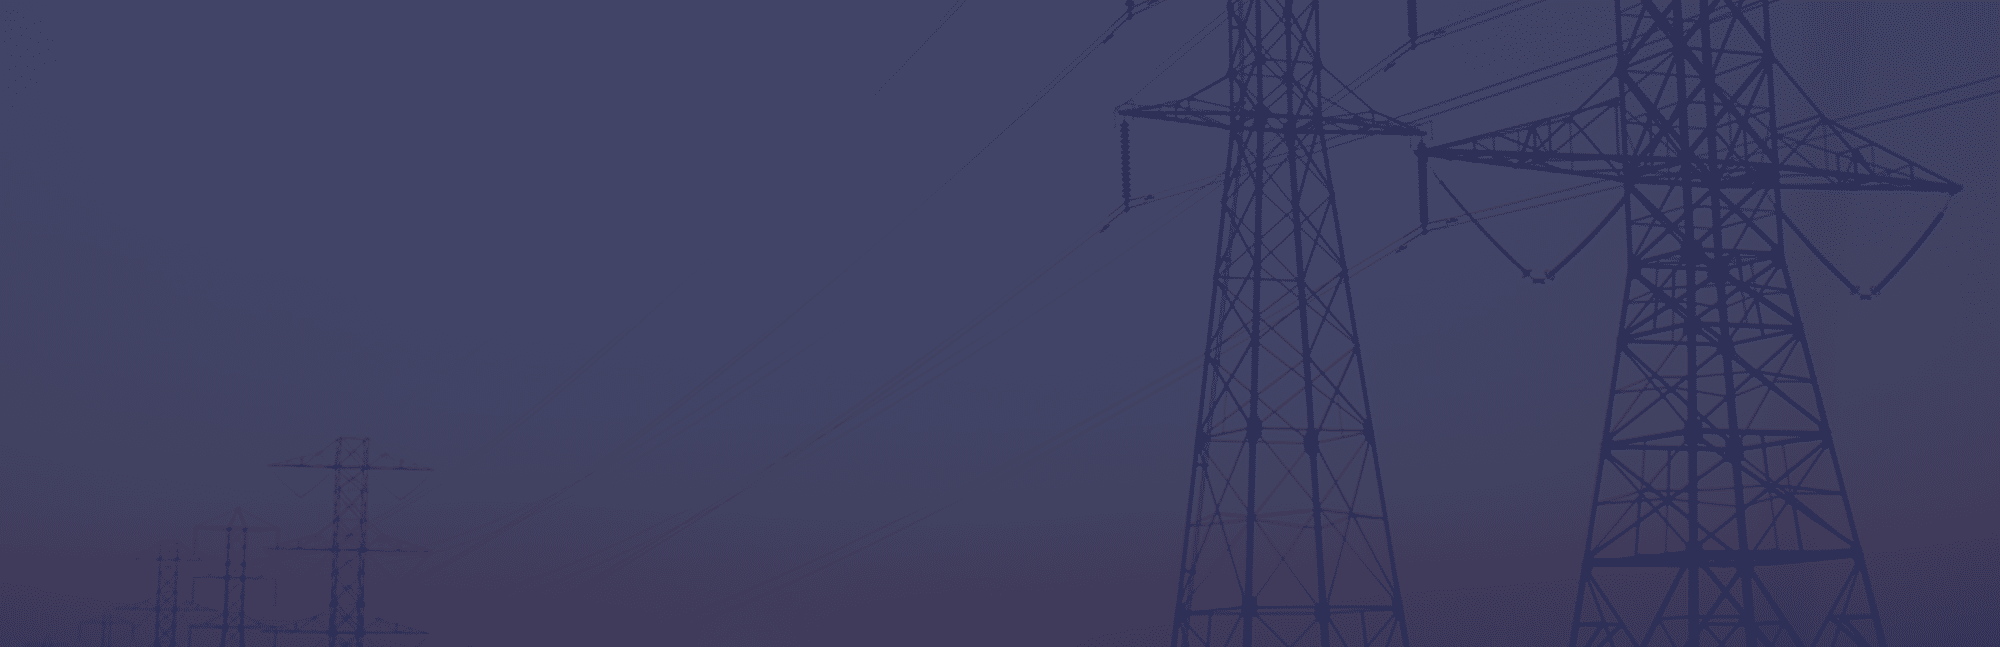 electric_utilities_banner